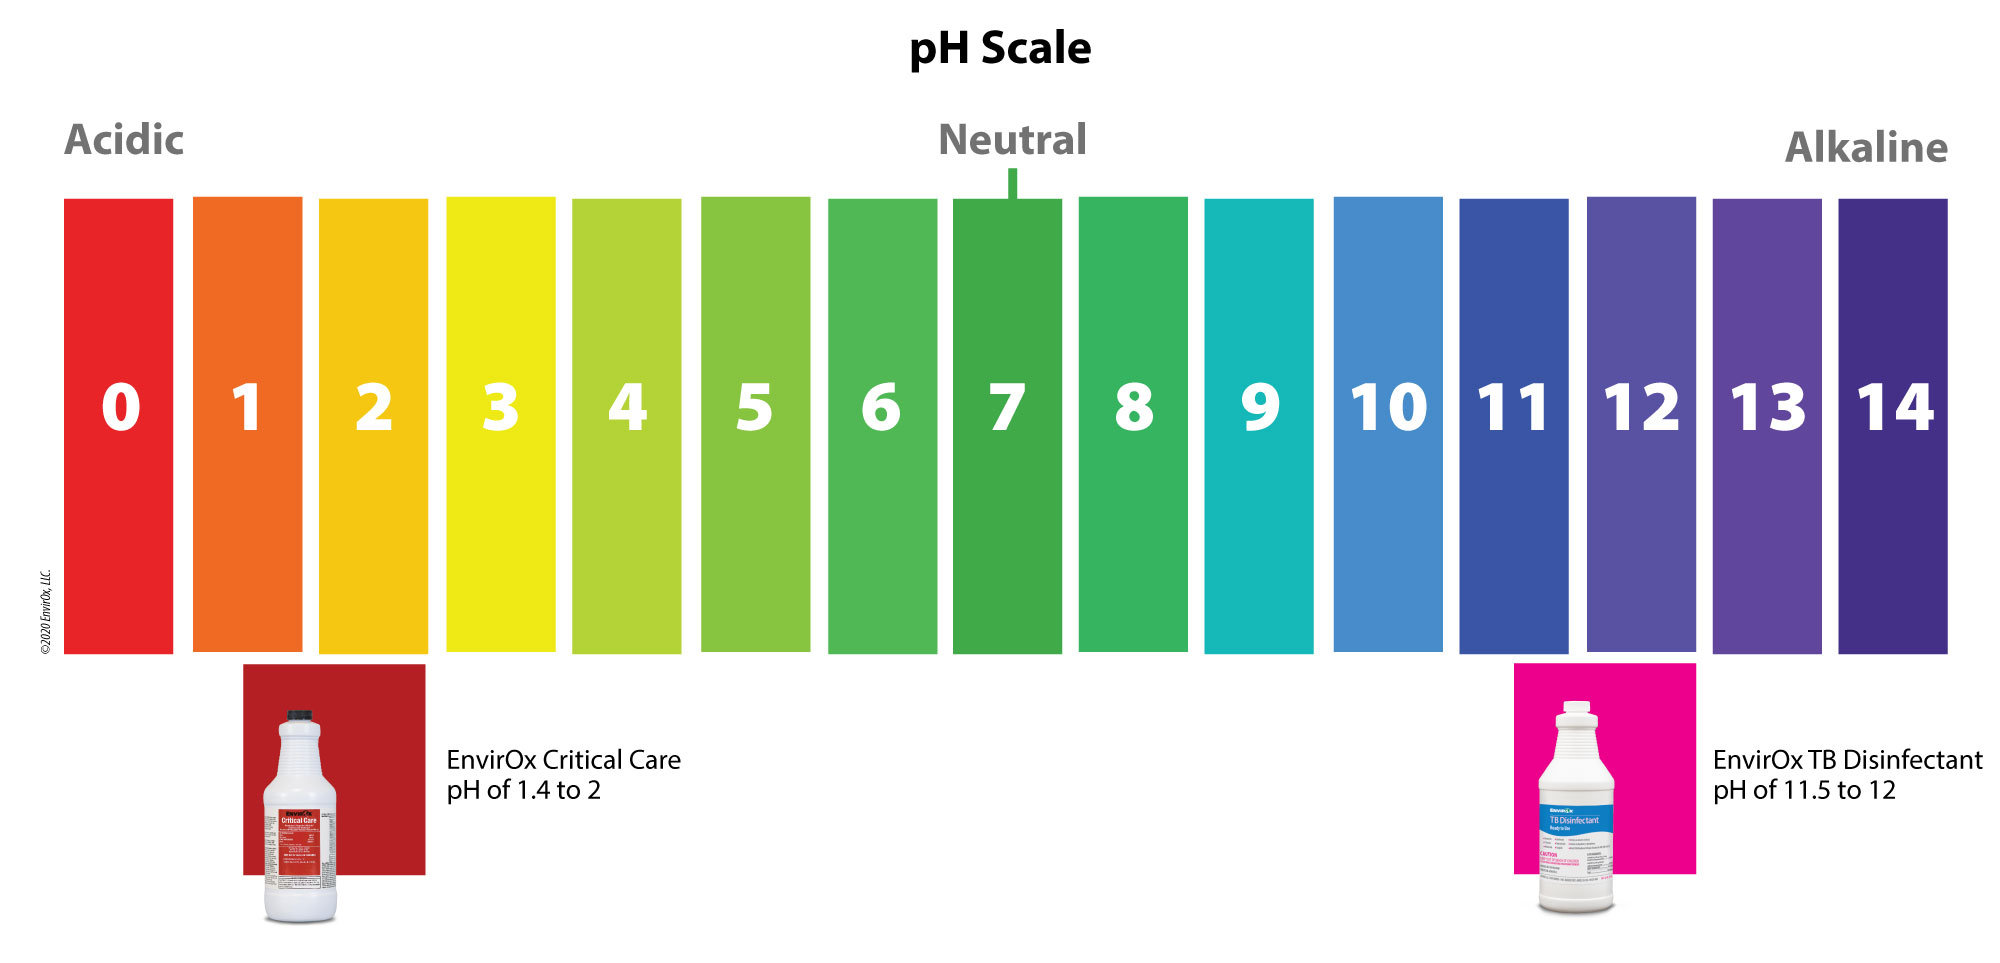 How disinfectants fit on the pH scale